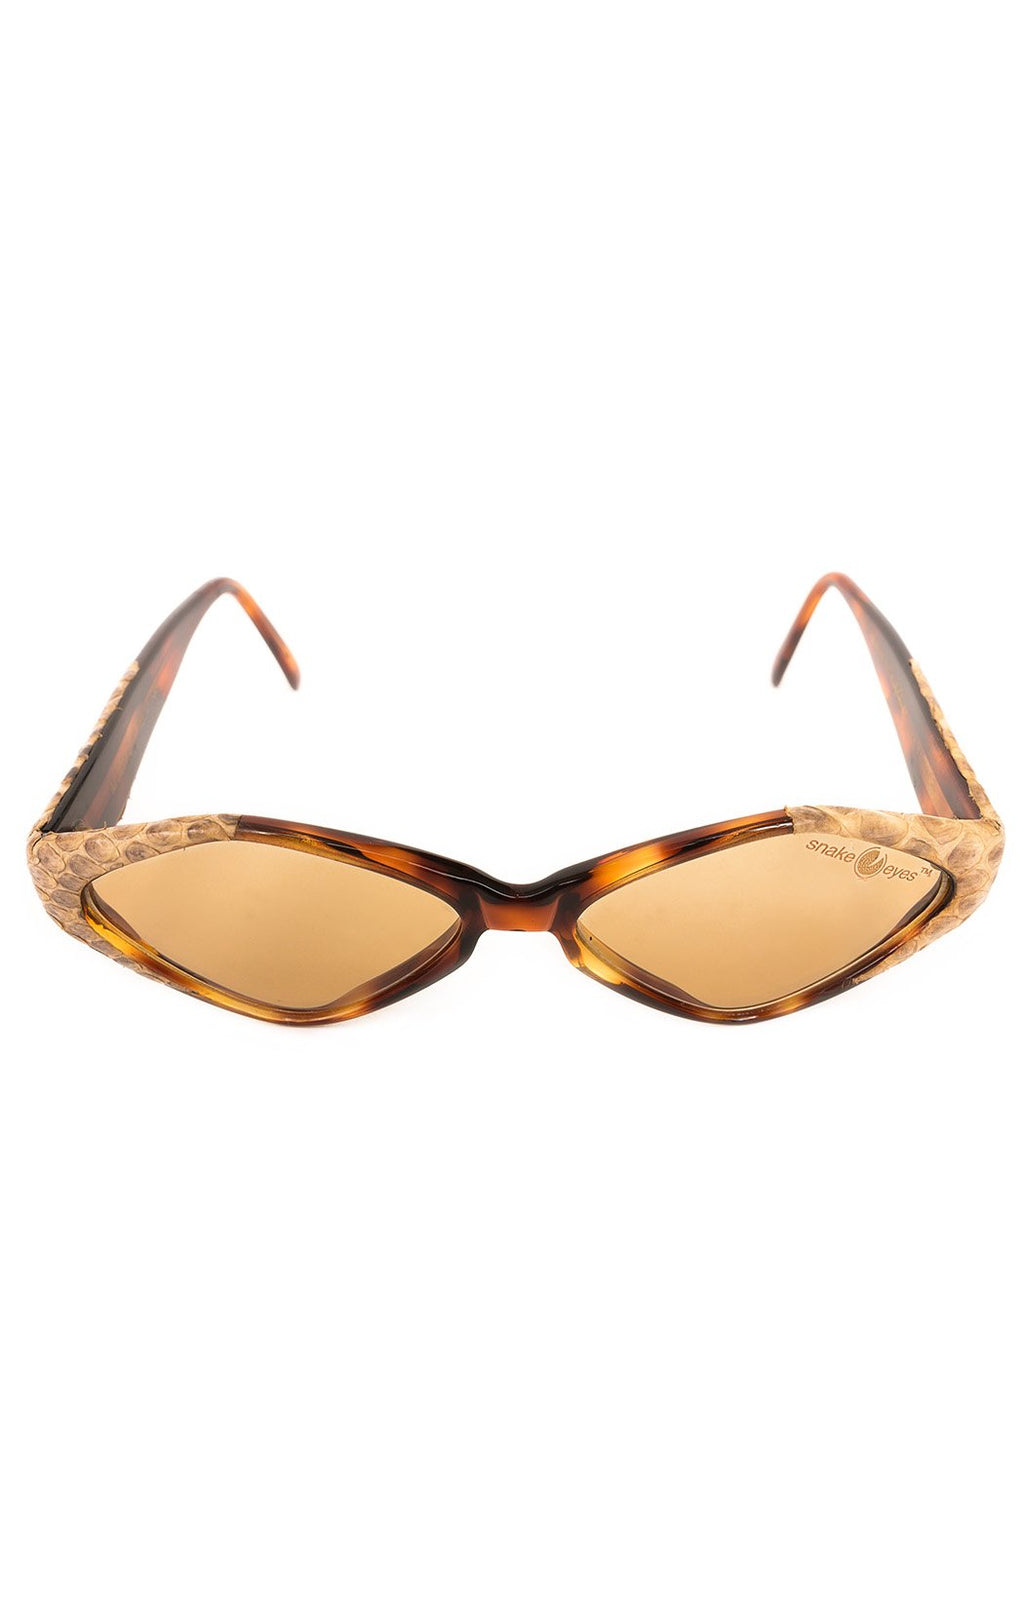 "Front view of CAVIAR Sunglasses  Size: 5.5"" W x 1.5"" H"